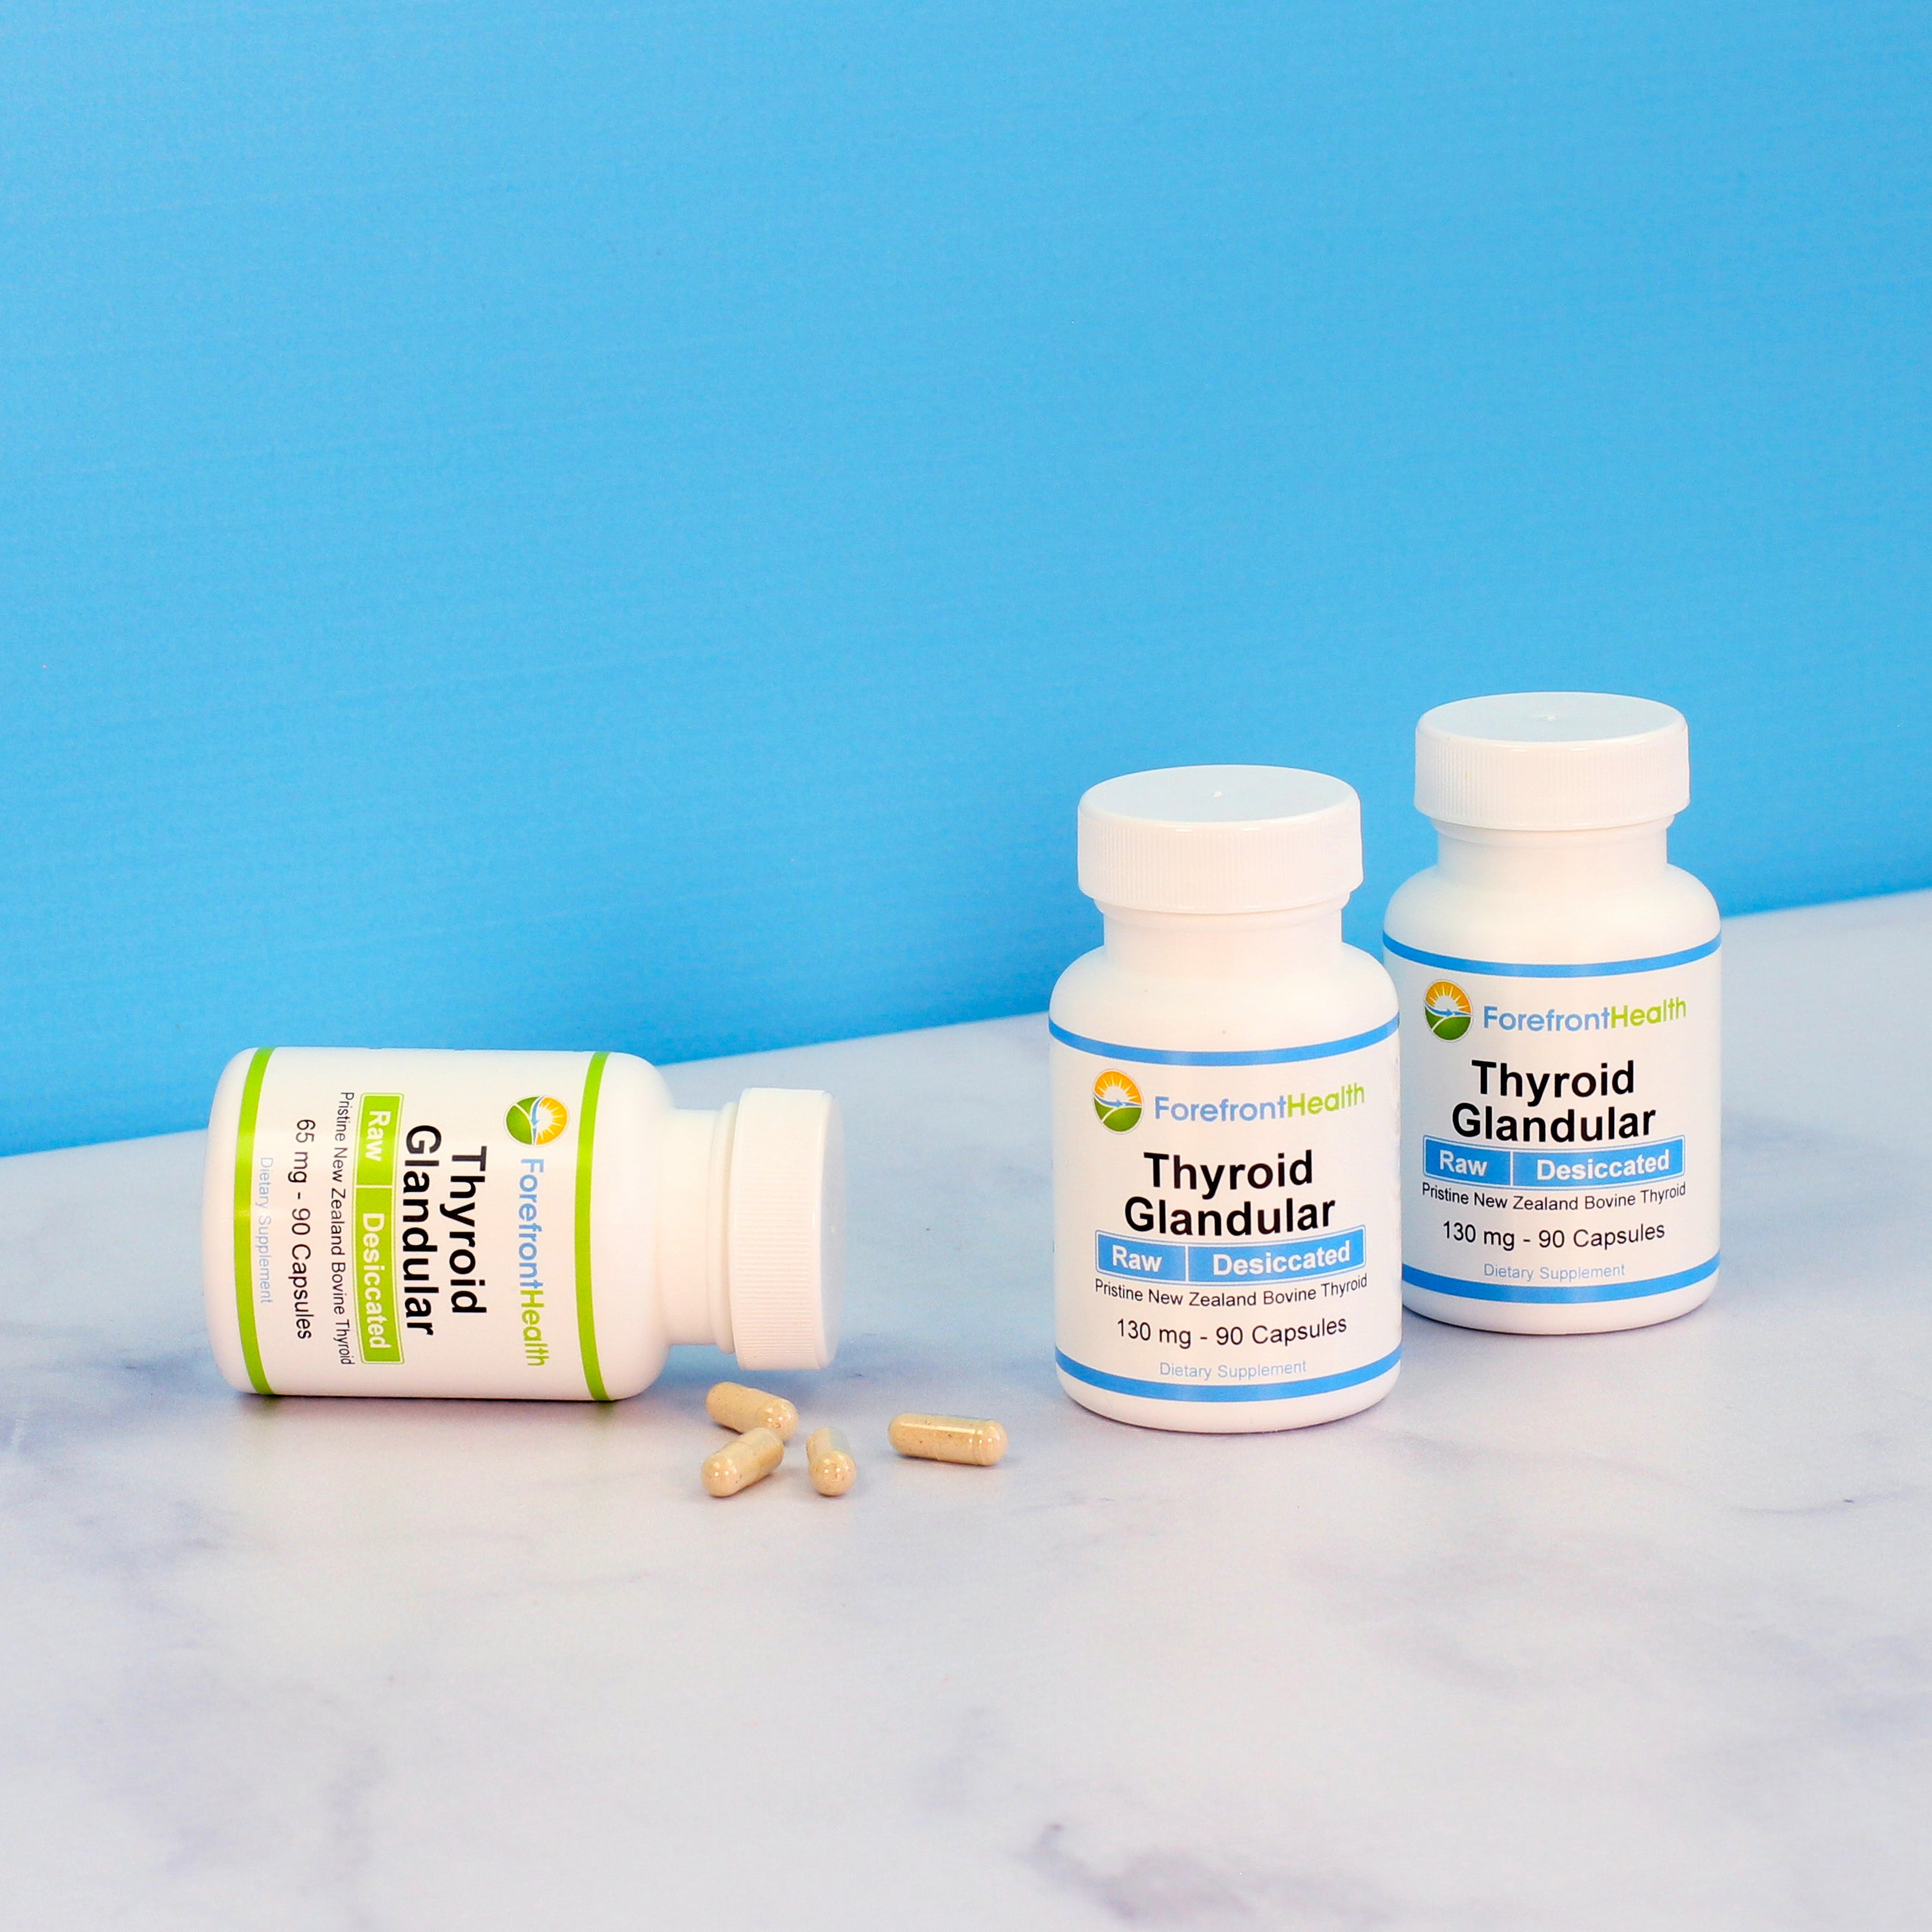 forefront-health-thyroid-65mg-and-130mg